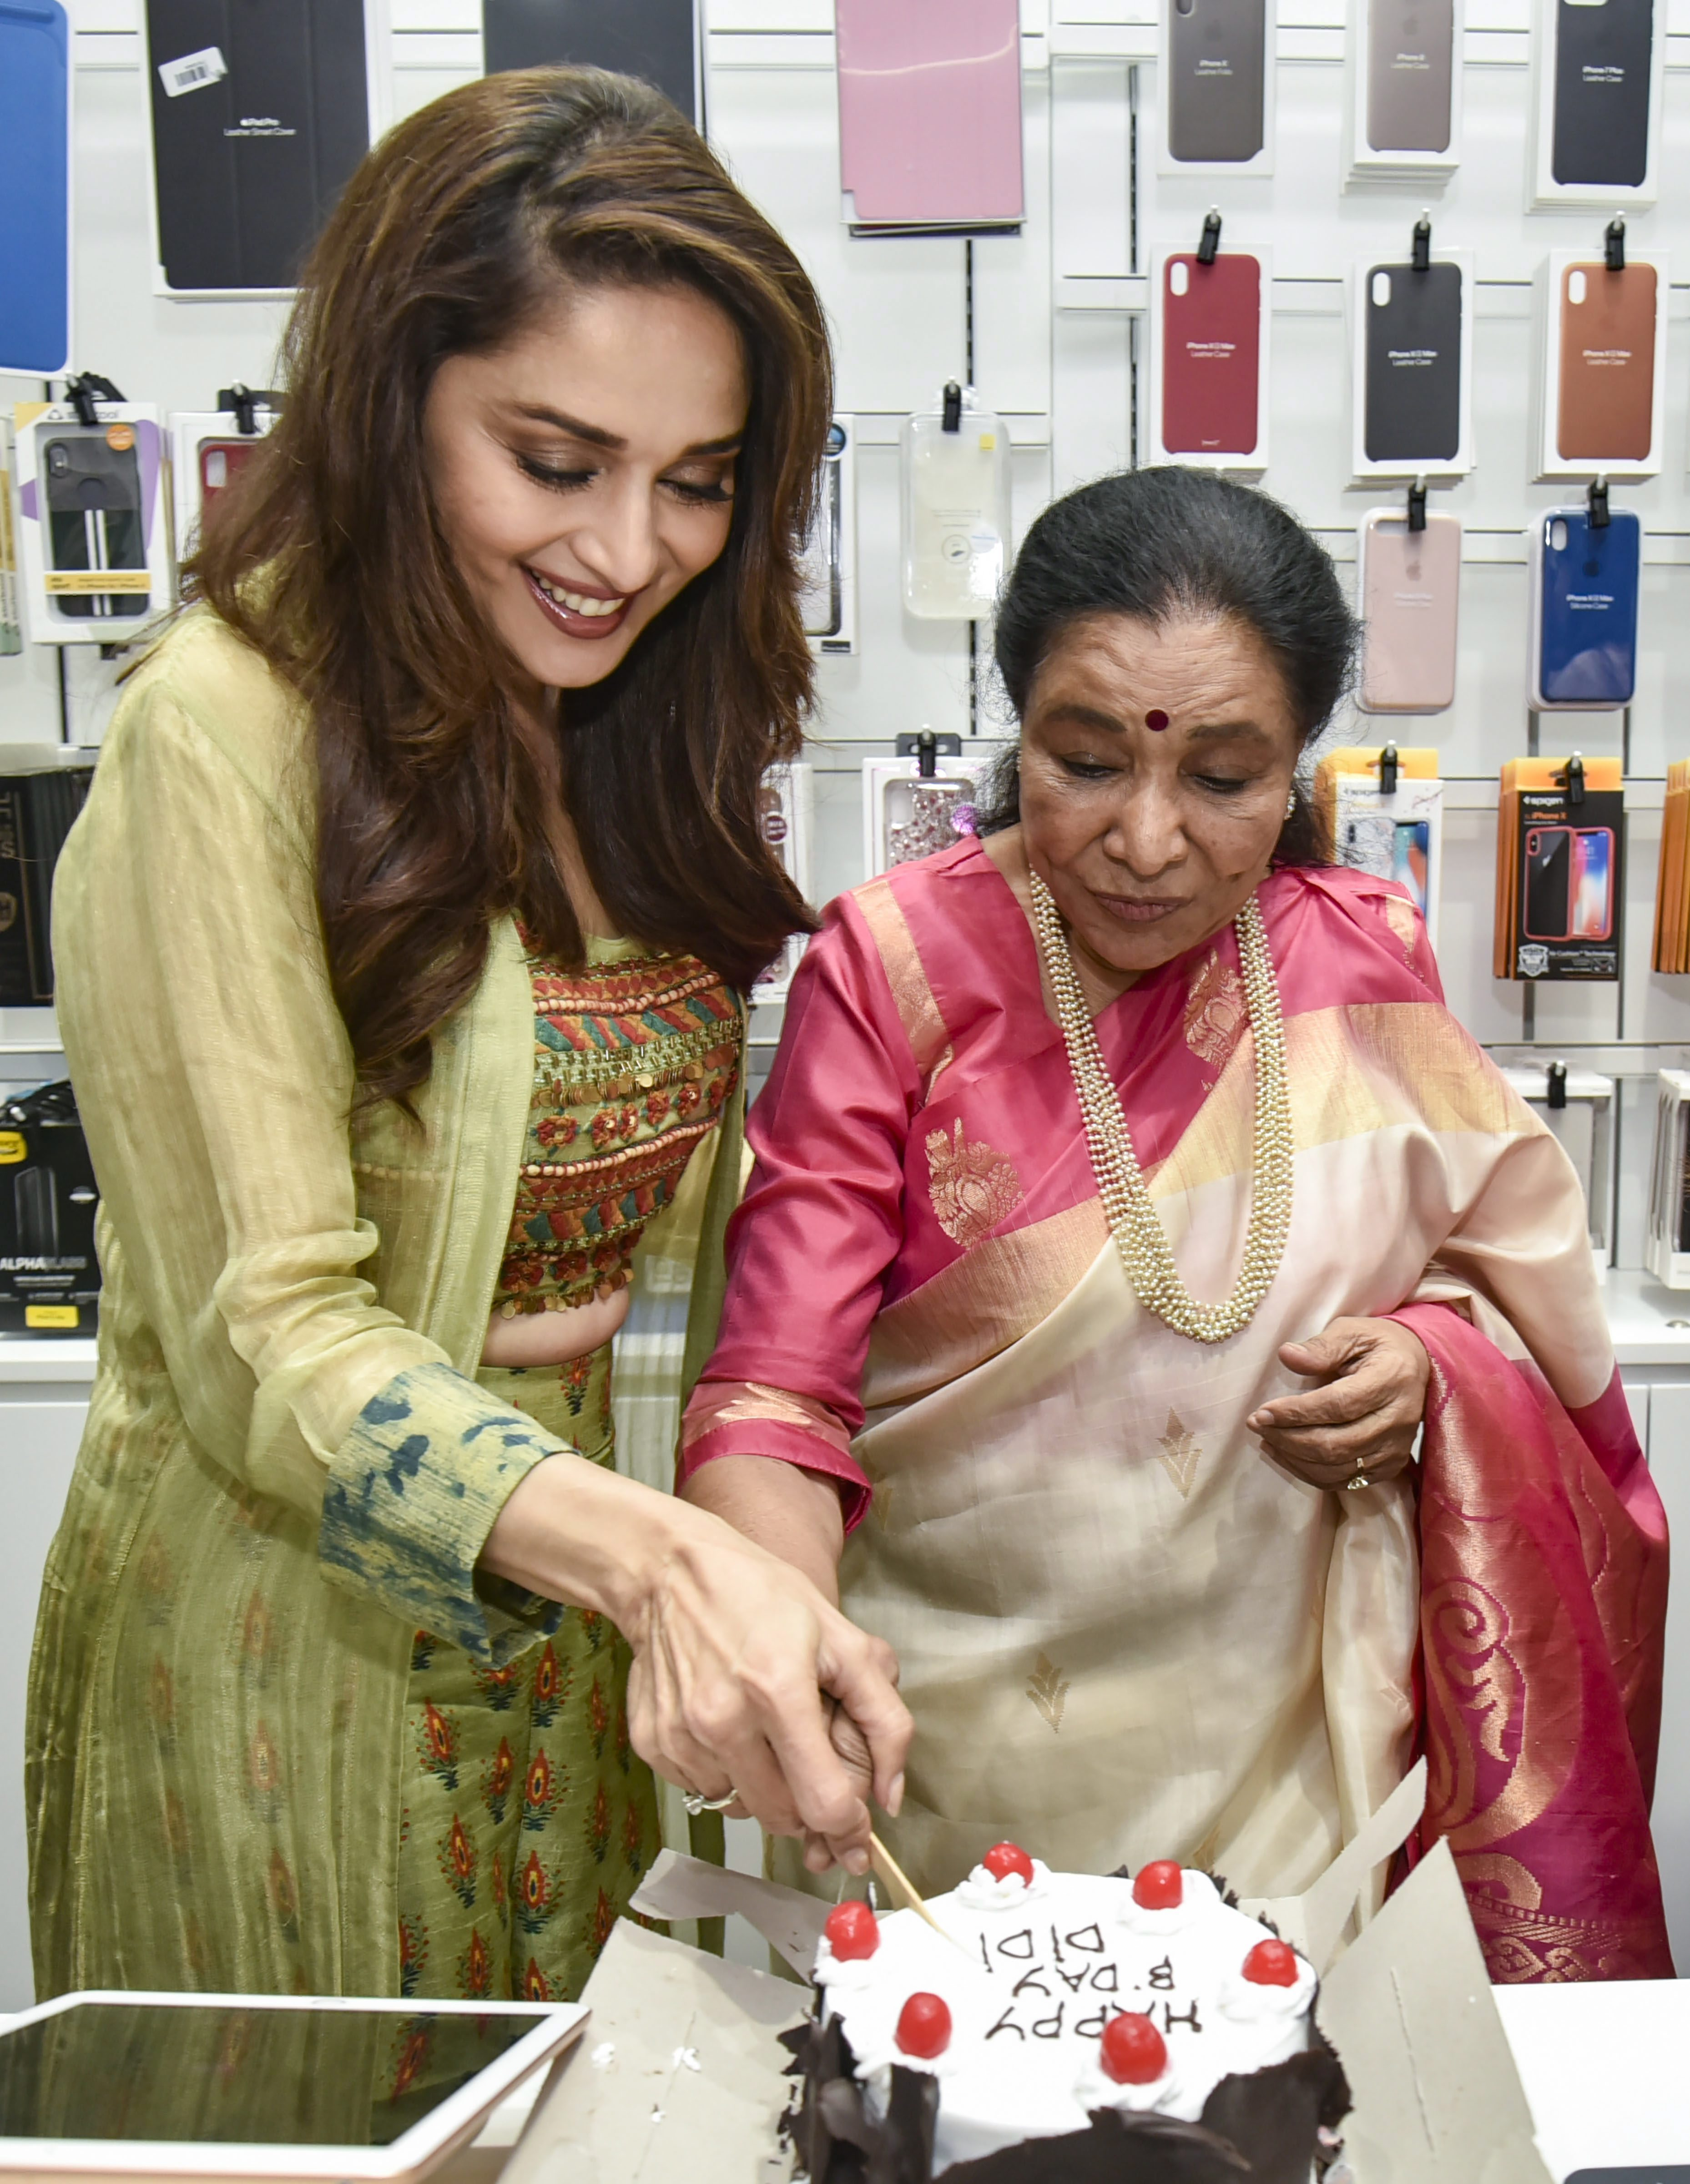 Bollywood singer Asha Bhosle with actor Madhuri Dixit Nene cut a cake during a product promotion, in Mumbai - PTI